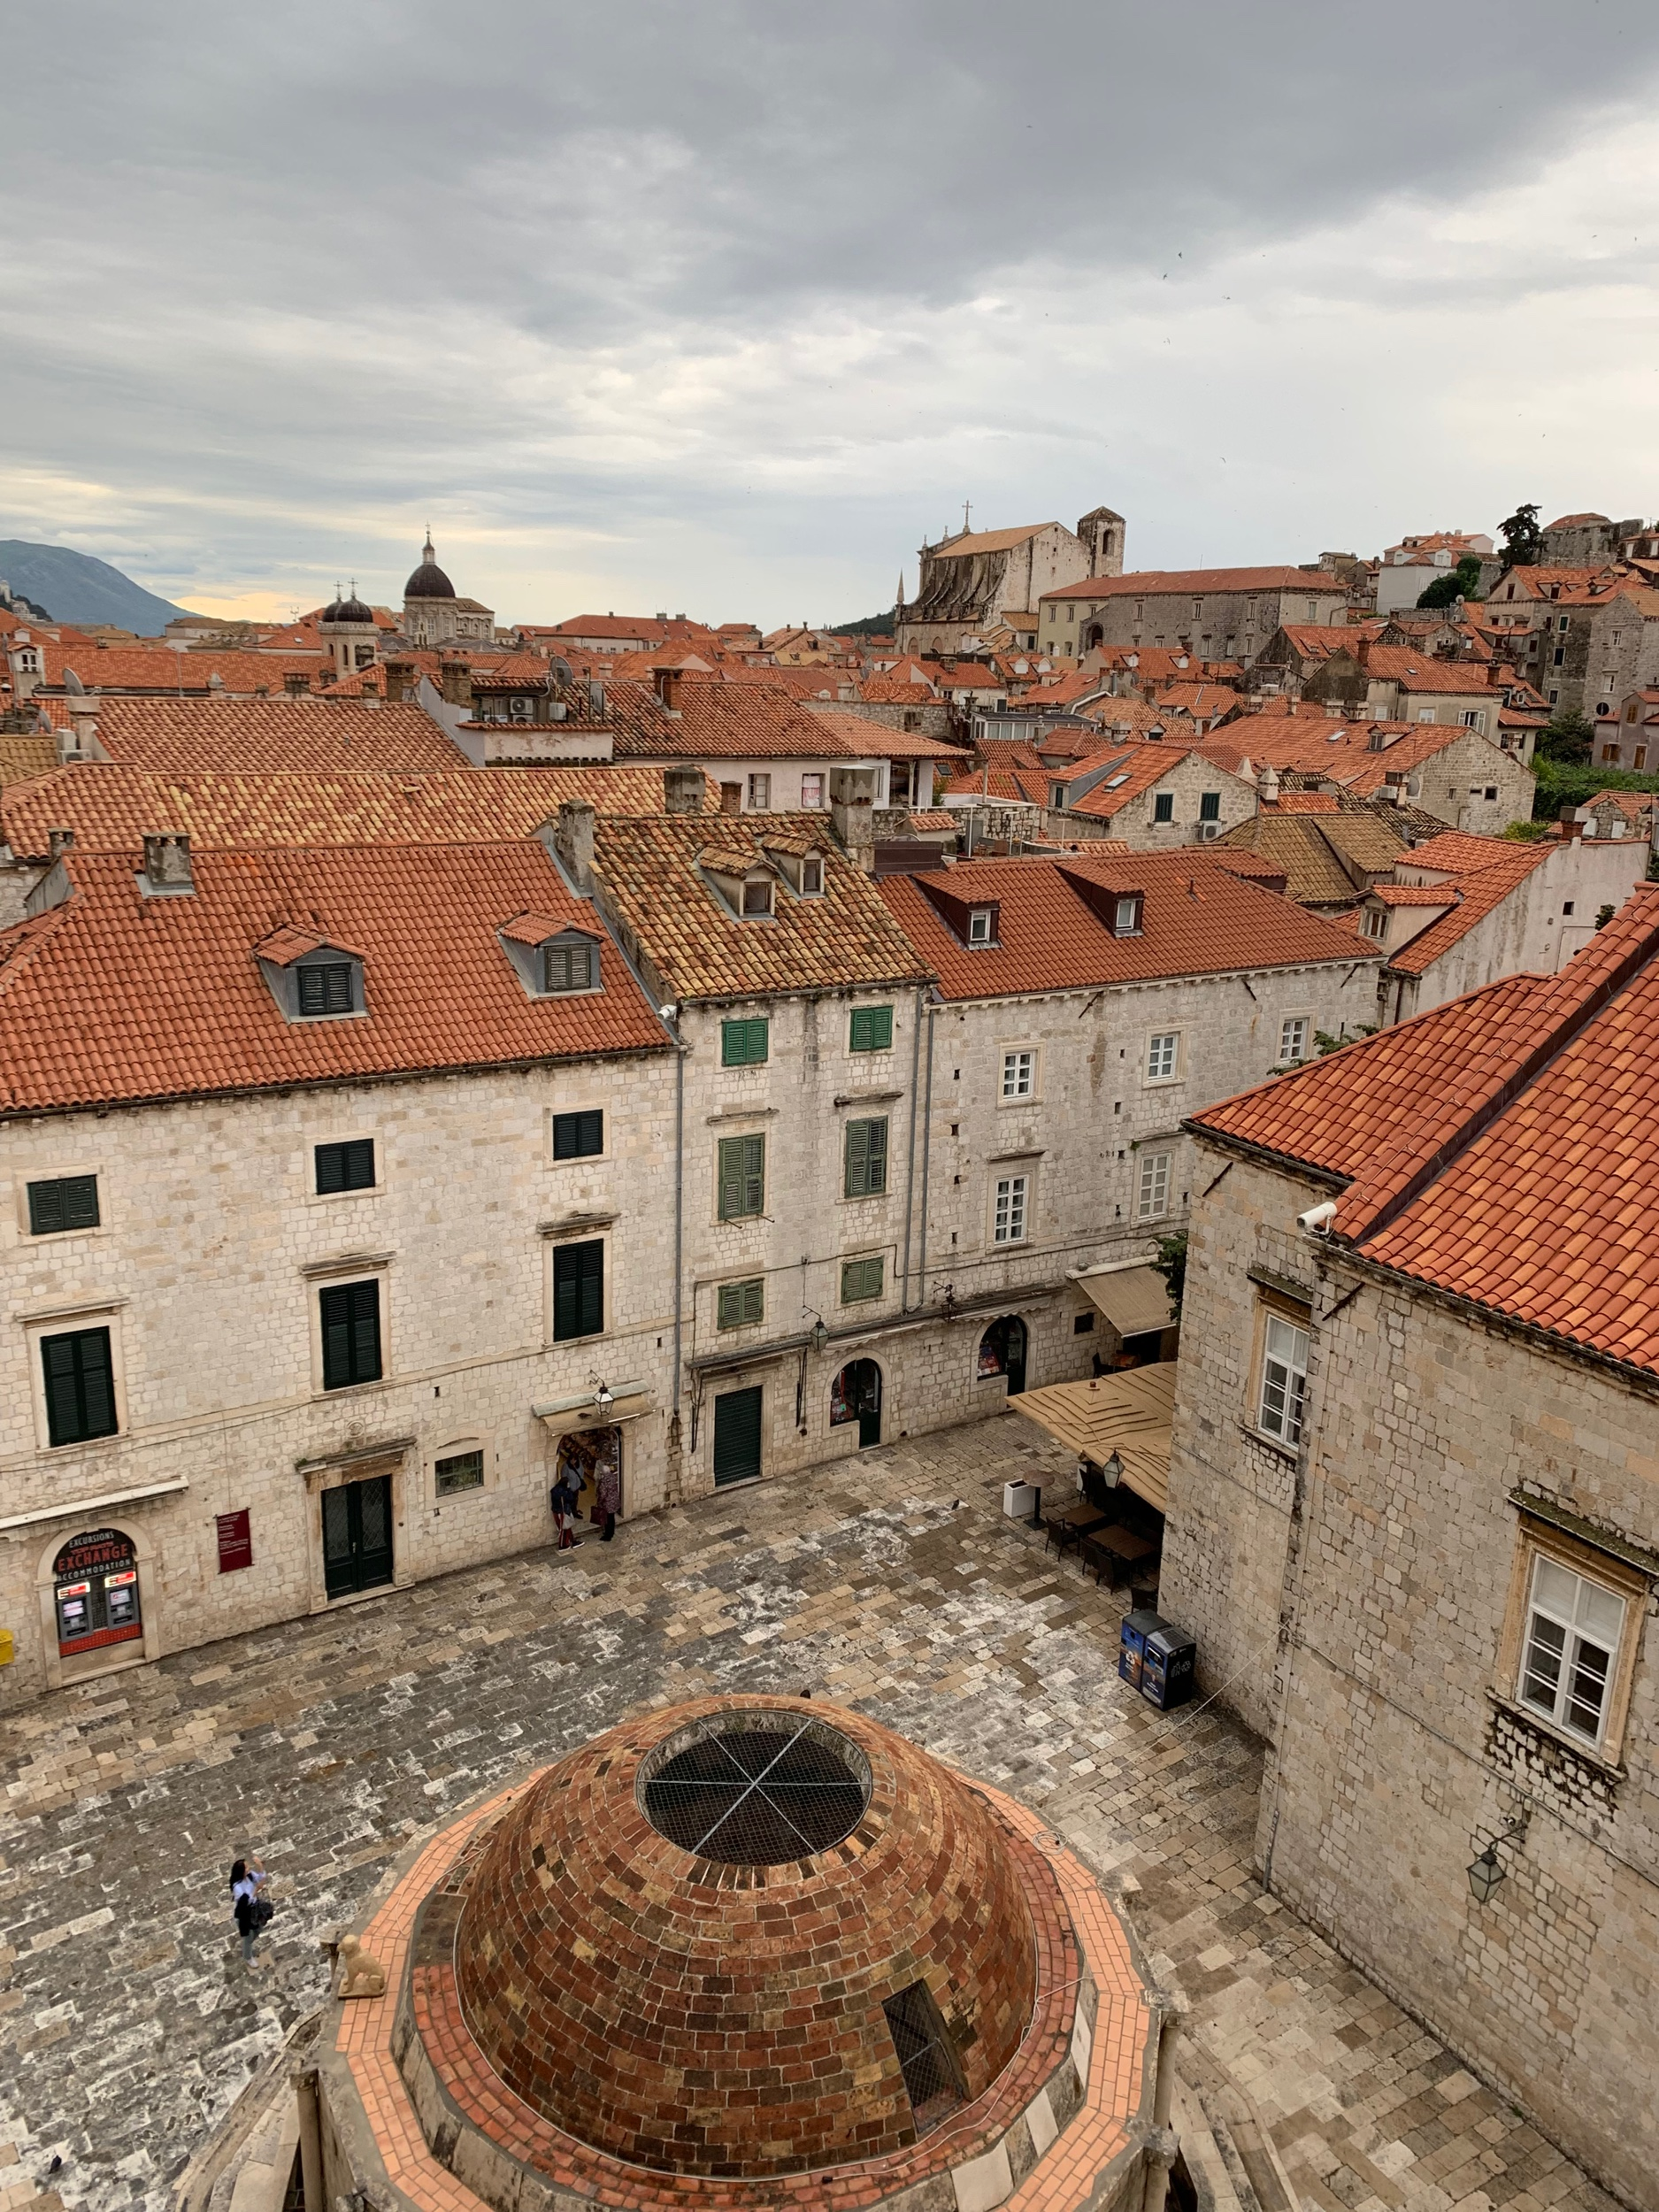 View of Dubrovnik's Old Town from on top of the fortified wall. Give yourself two hours to walk around it calmly and enjoy the panorama.